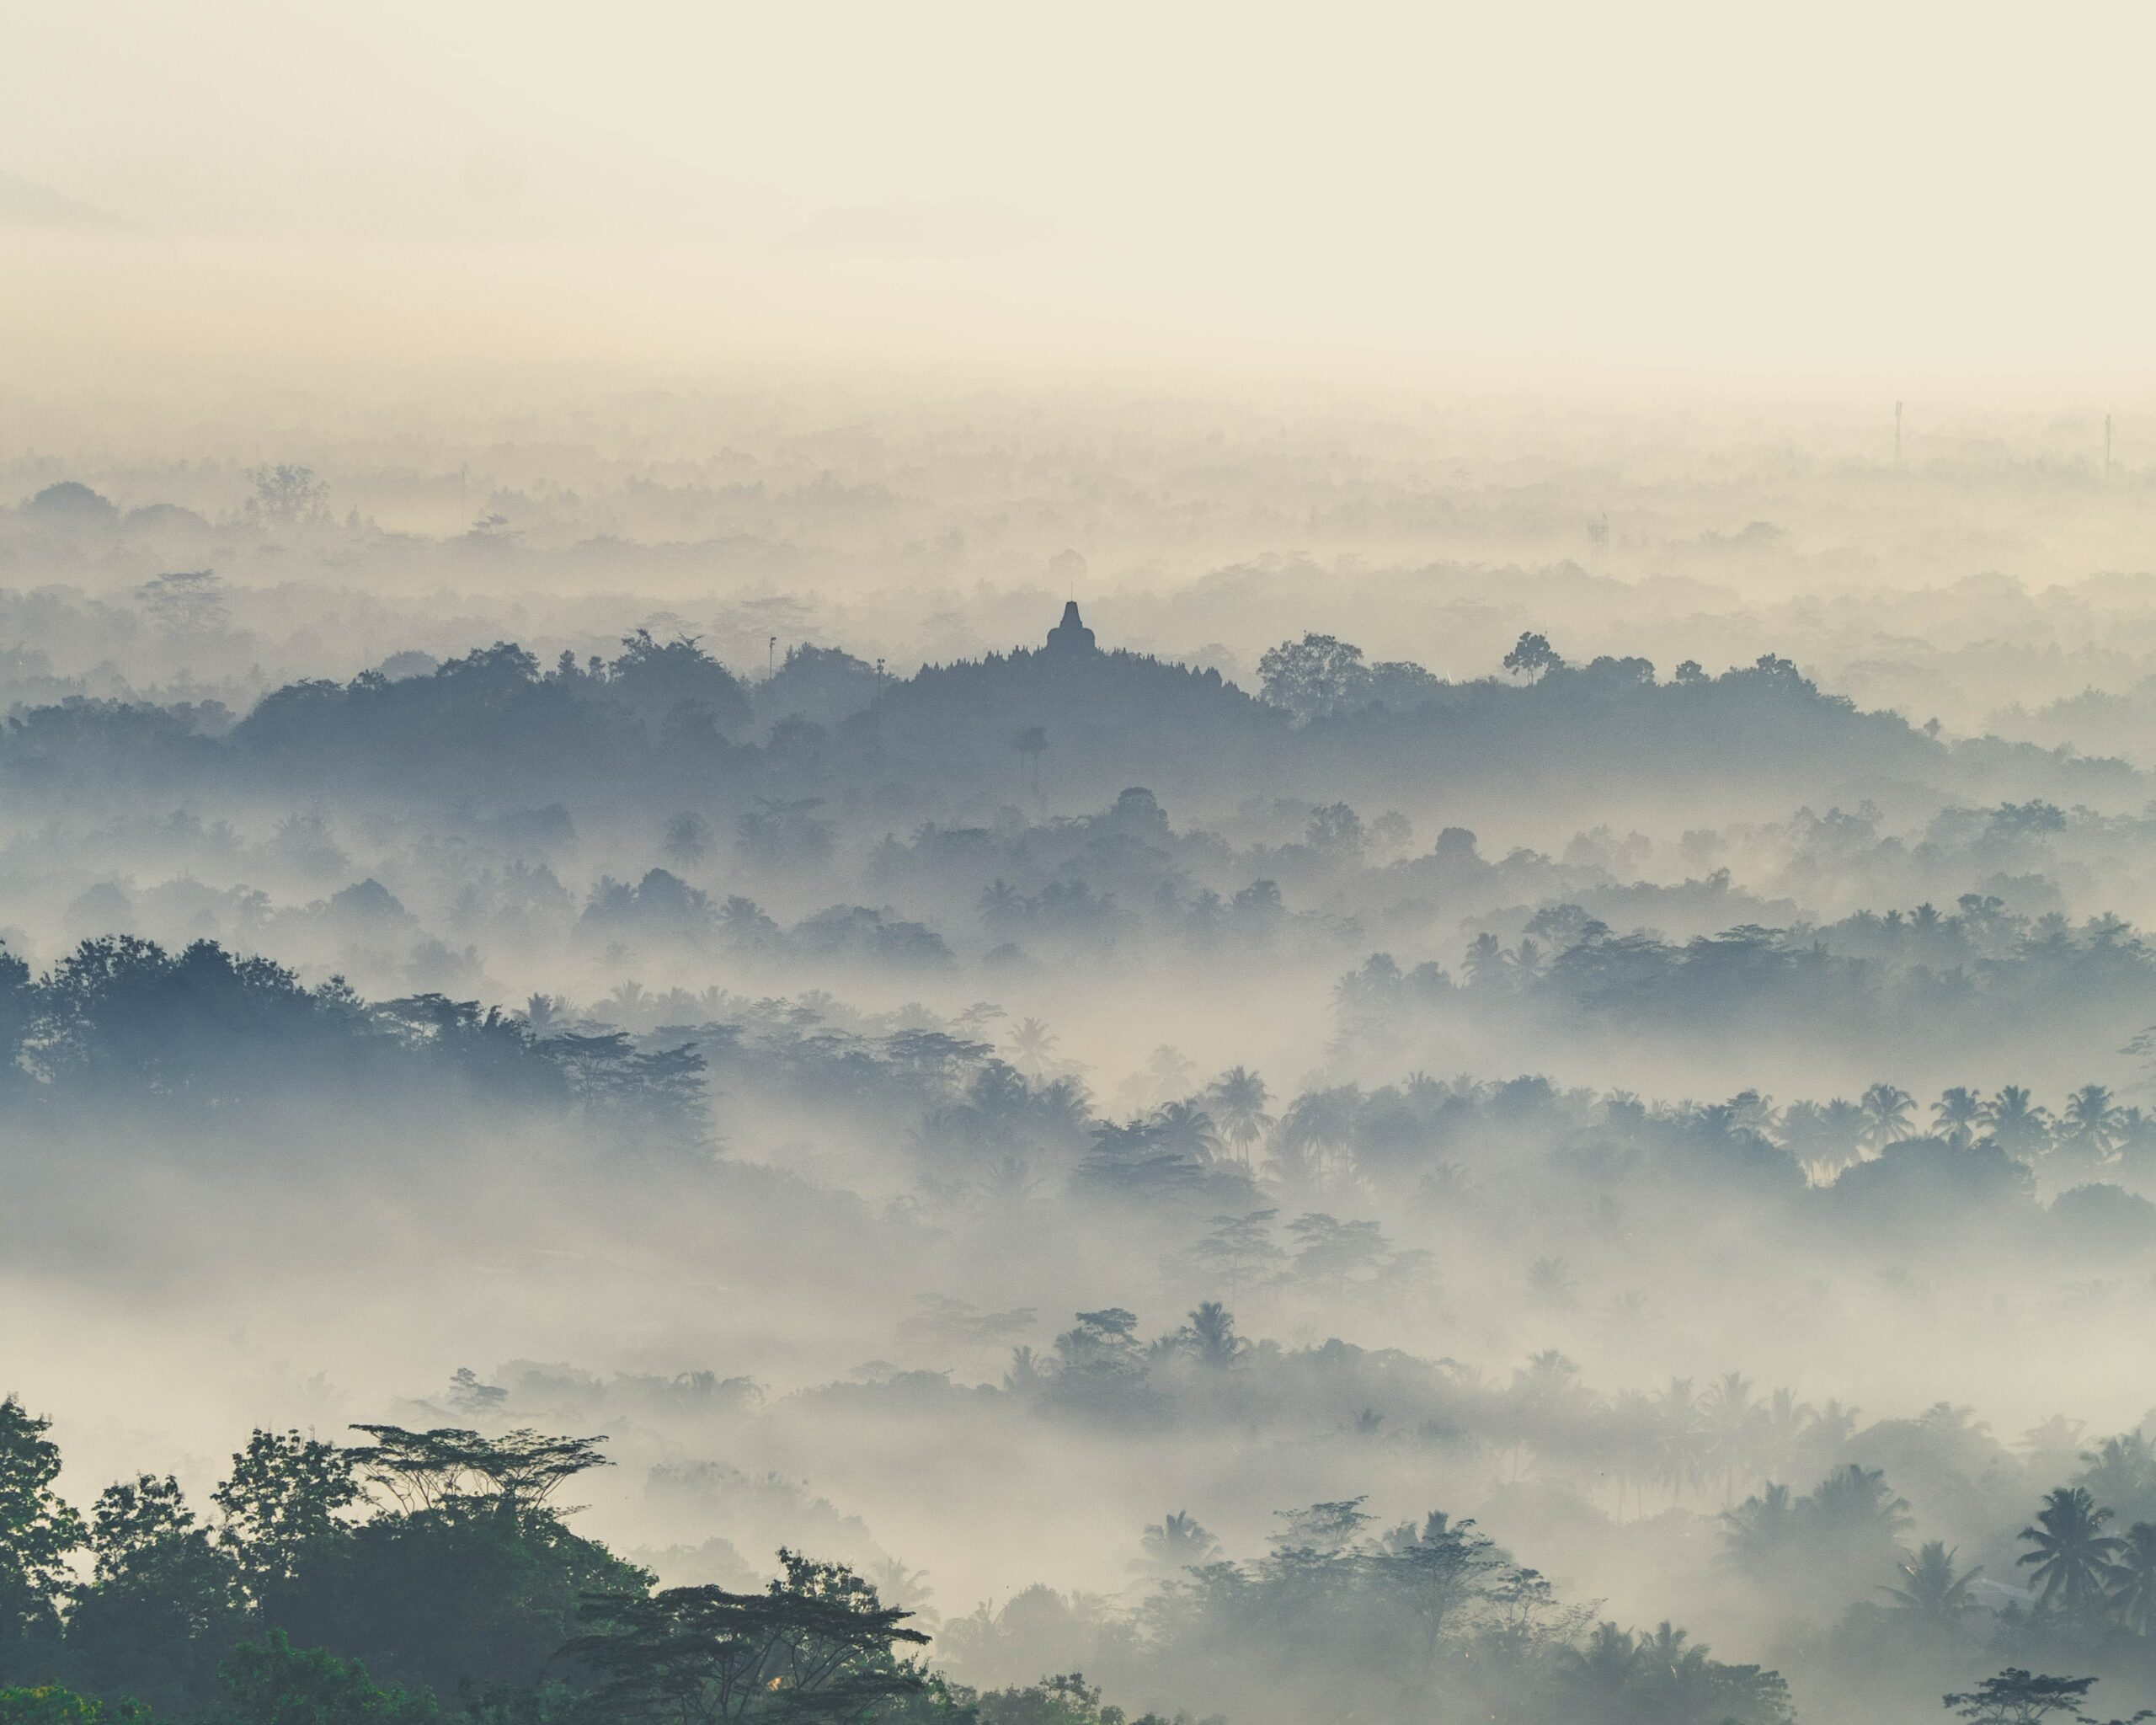 Borobudur is one of the most stunning landmarks in Indonesia.